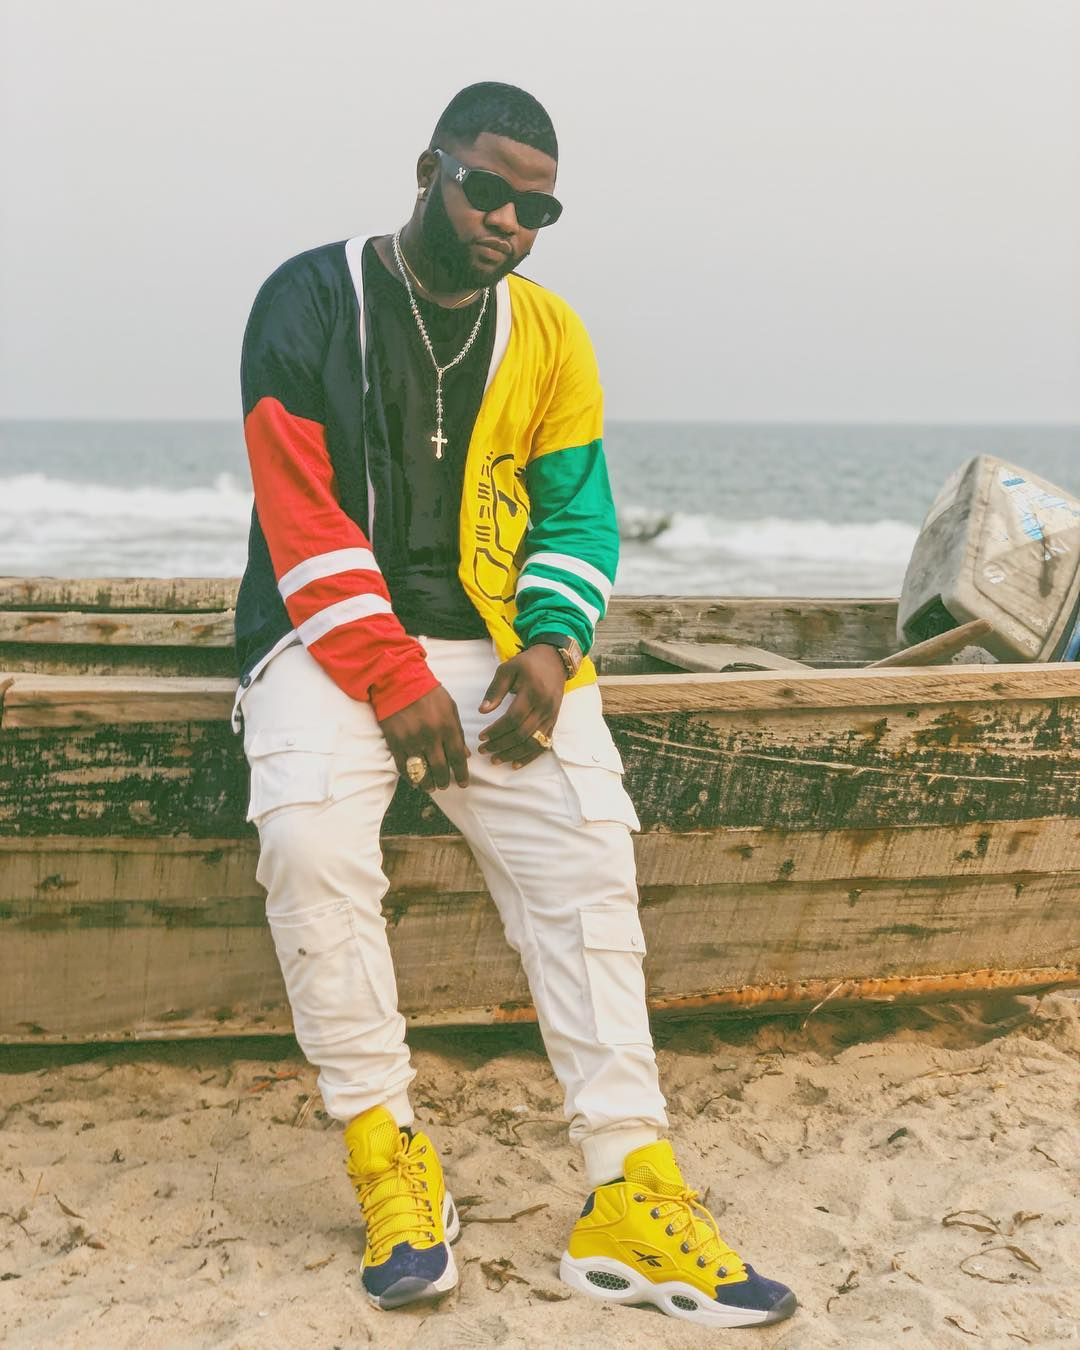 Nigerian rapper Skales talks about his background, love for